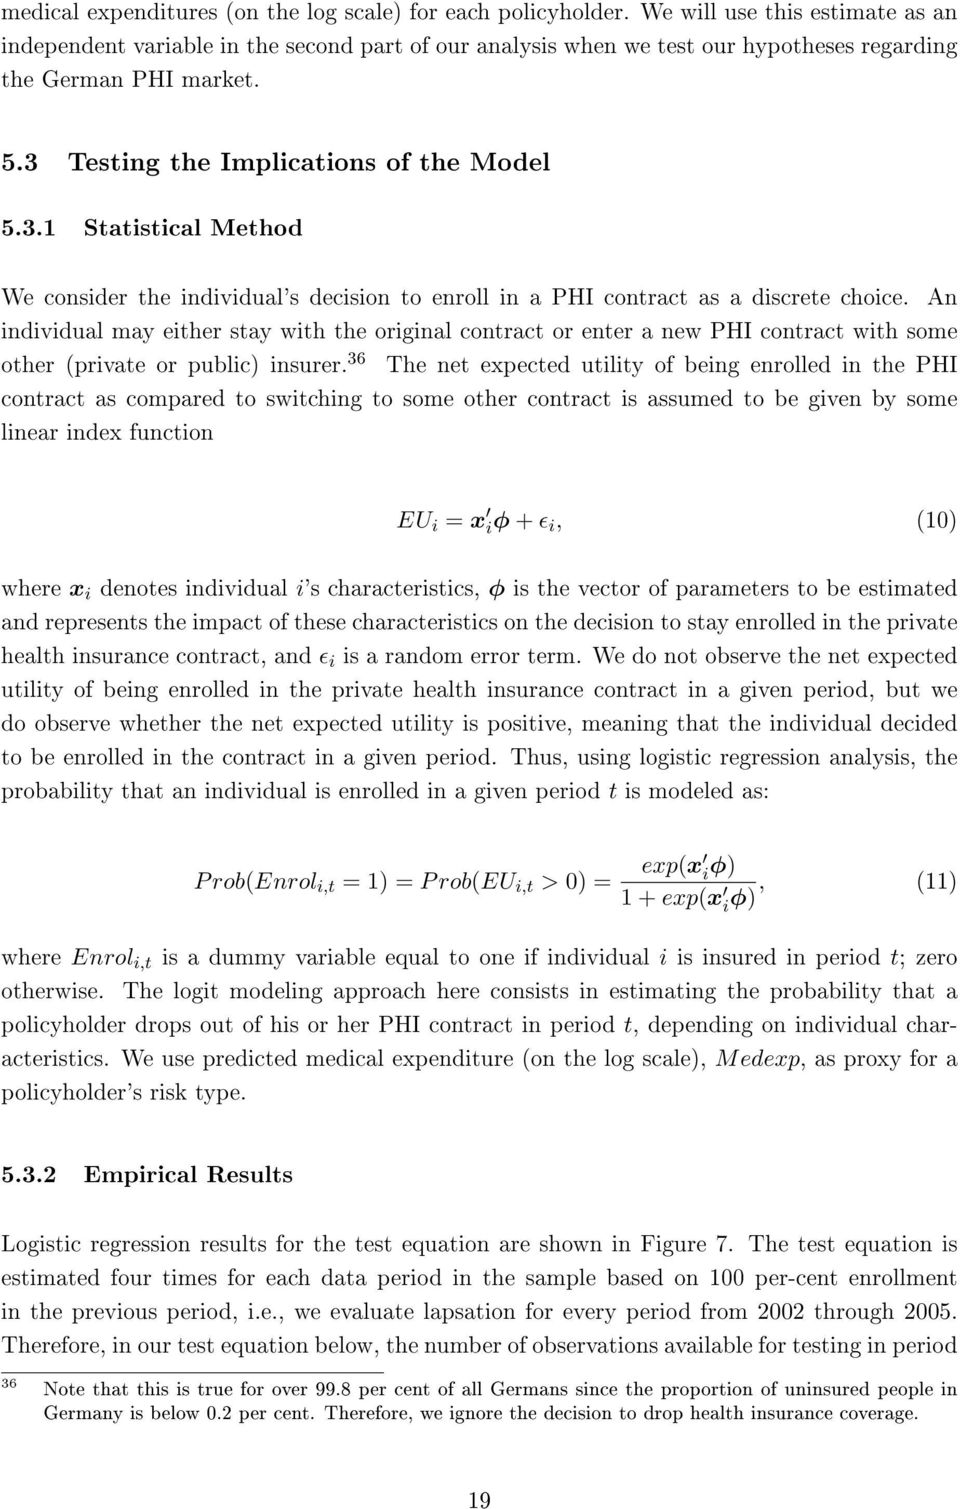 Testing the Implications of the Model 5.3.1 Statistical Method We consider the individual's decision to enroll in a PHI contract as a discrete choice.